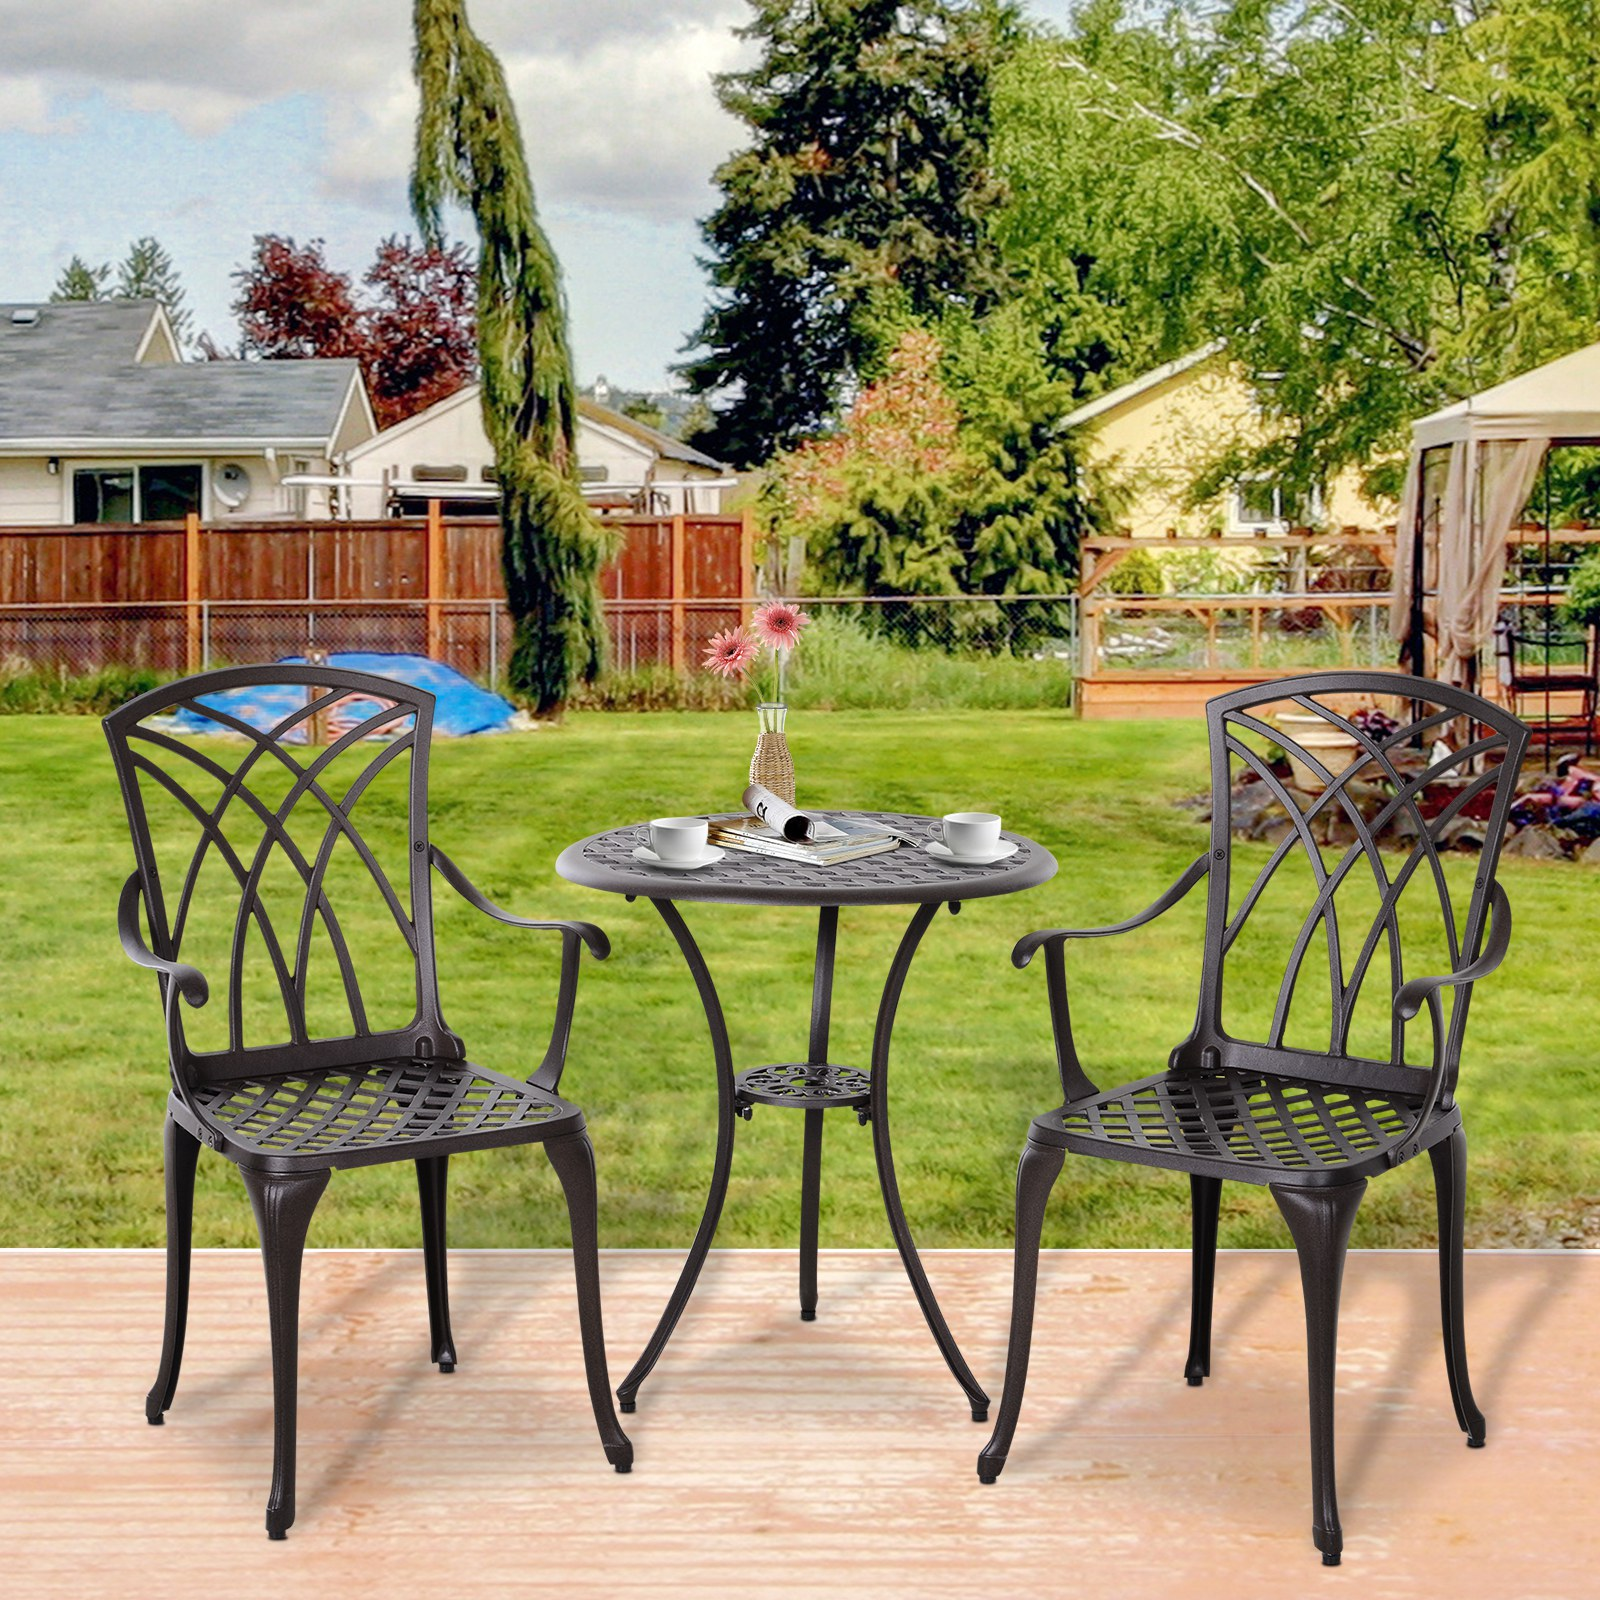 Details about 7 Piece Coffee Table Chairs Outdoor Garden Furniture Set w/  Φ75mm Umbrella Hole